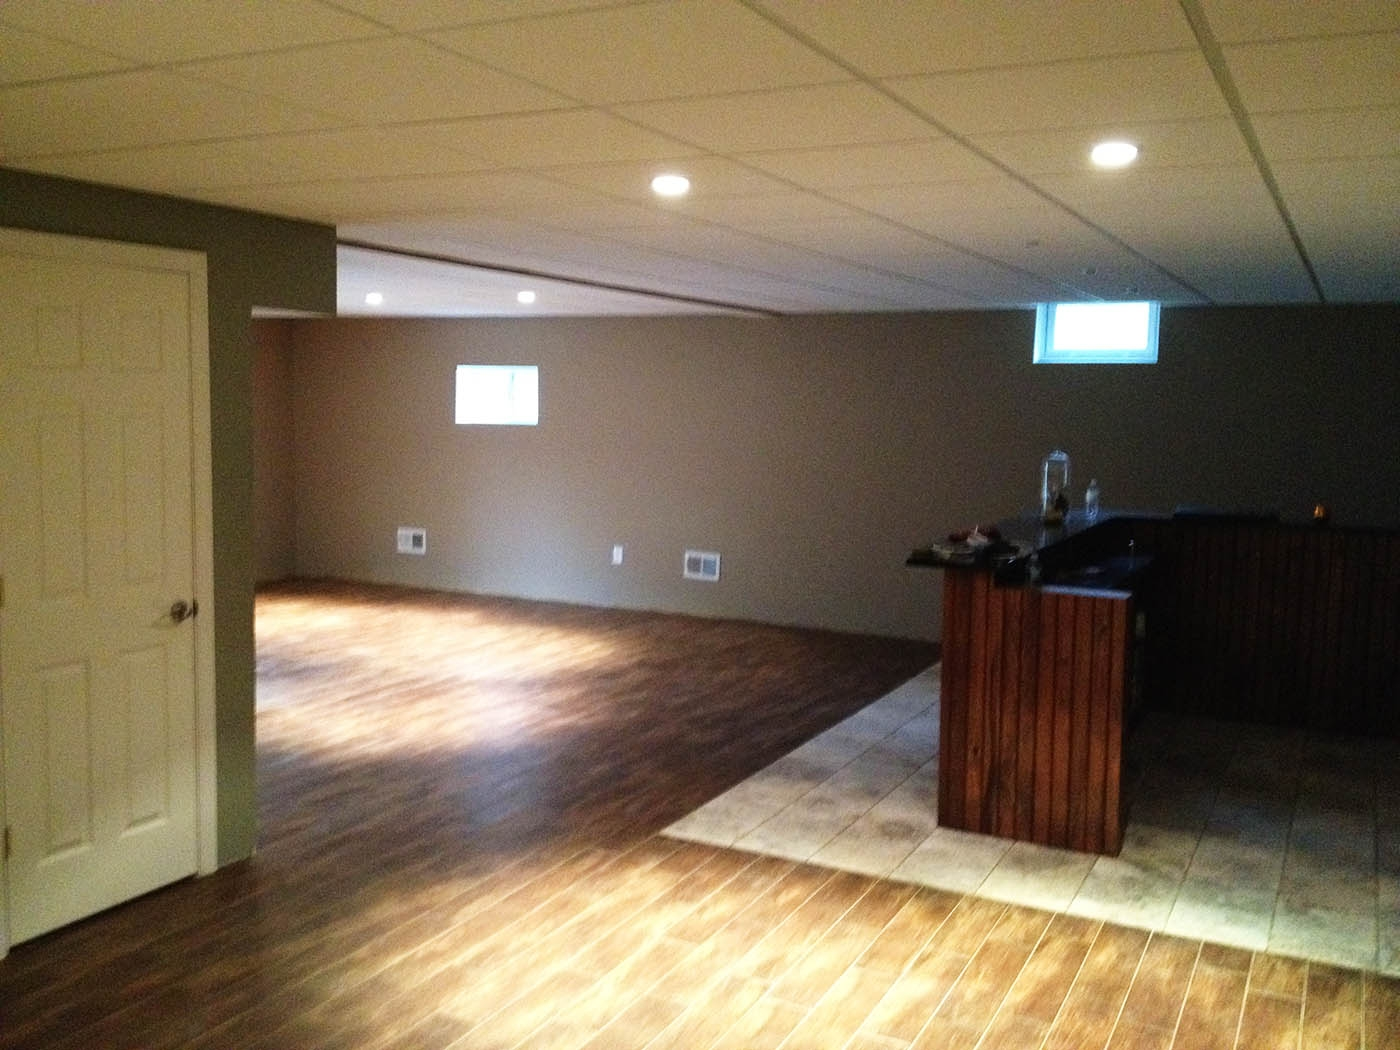 Types Of Drop Ceilings For Basements